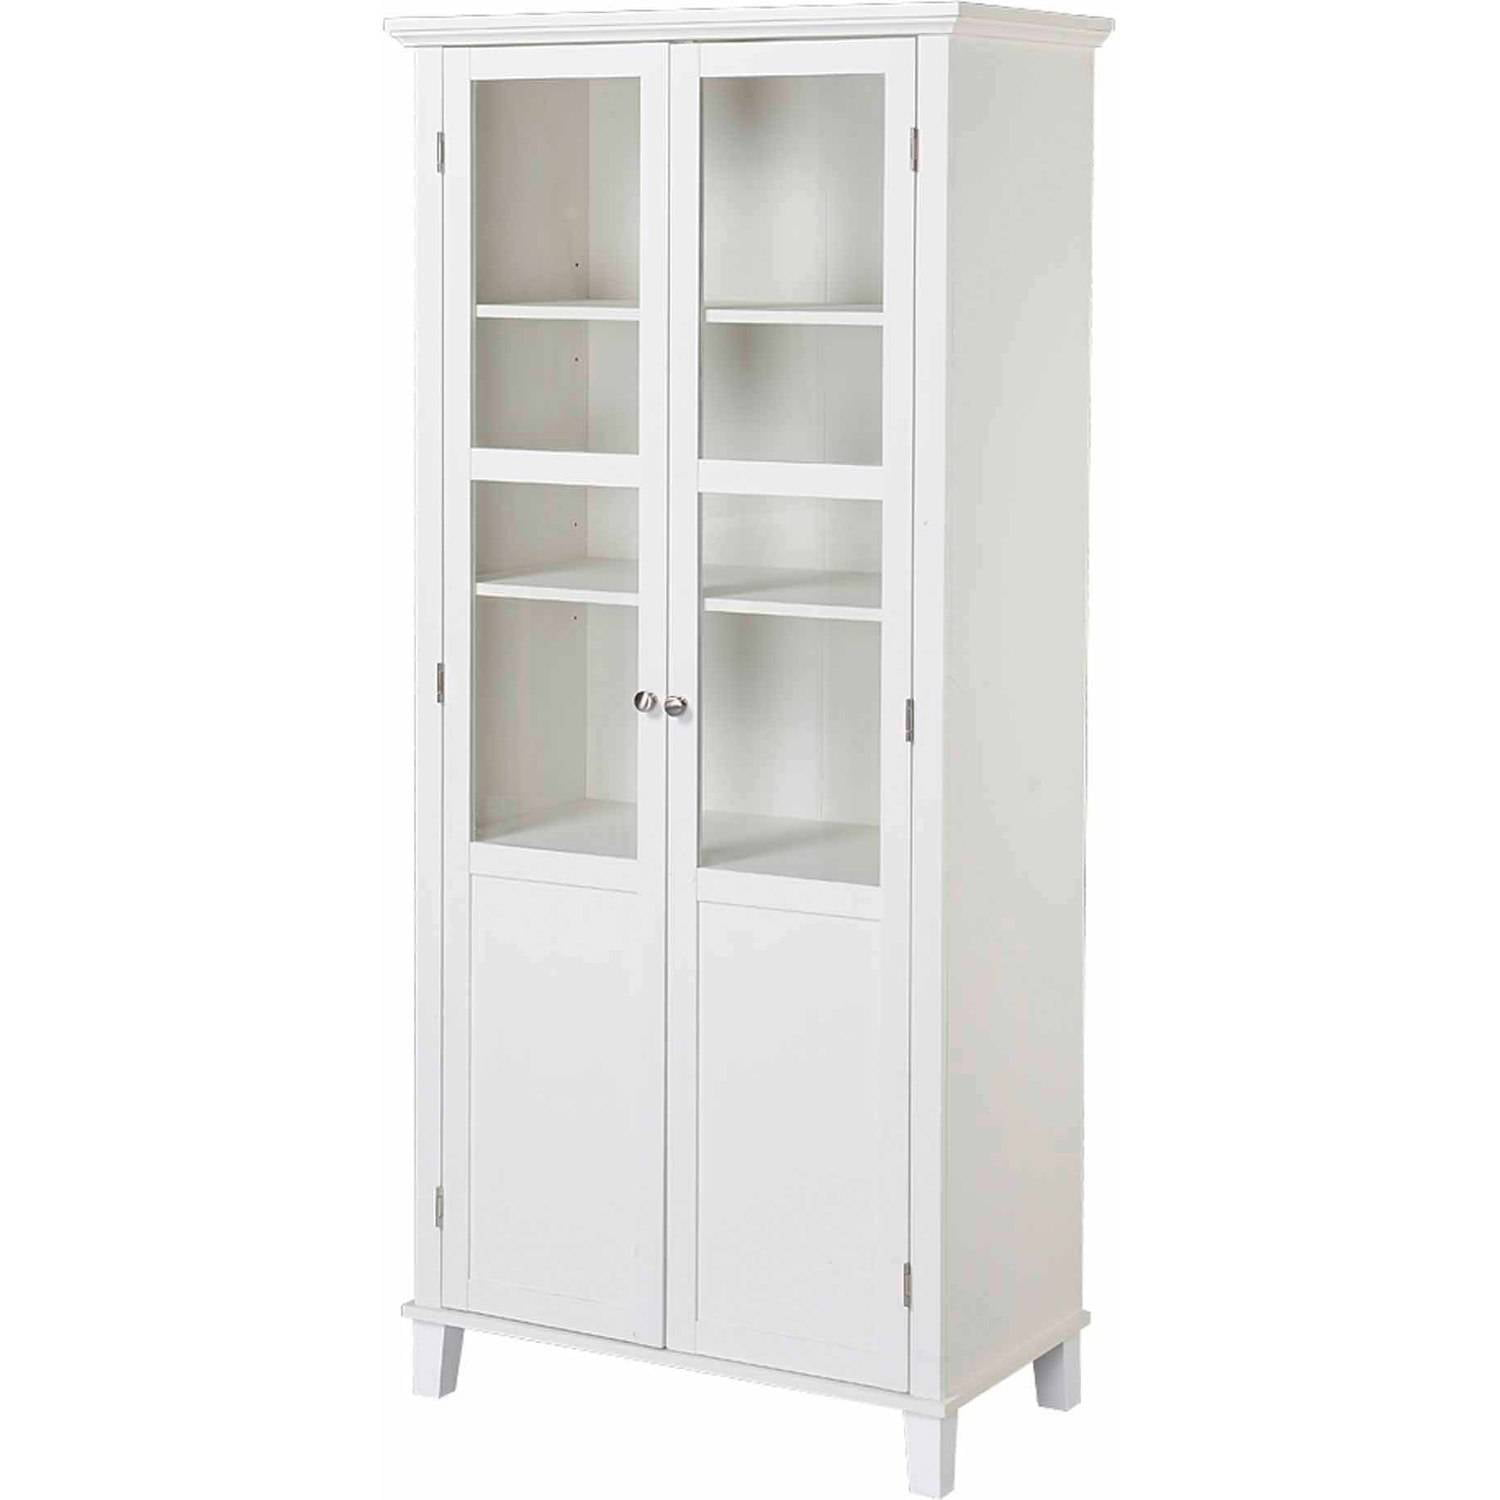 Homestar 2 Door Storage Cabinet Walmart com. 2 Door Wooden Bathroom Cabinet White  Mainstays 2 Door Wood Wall